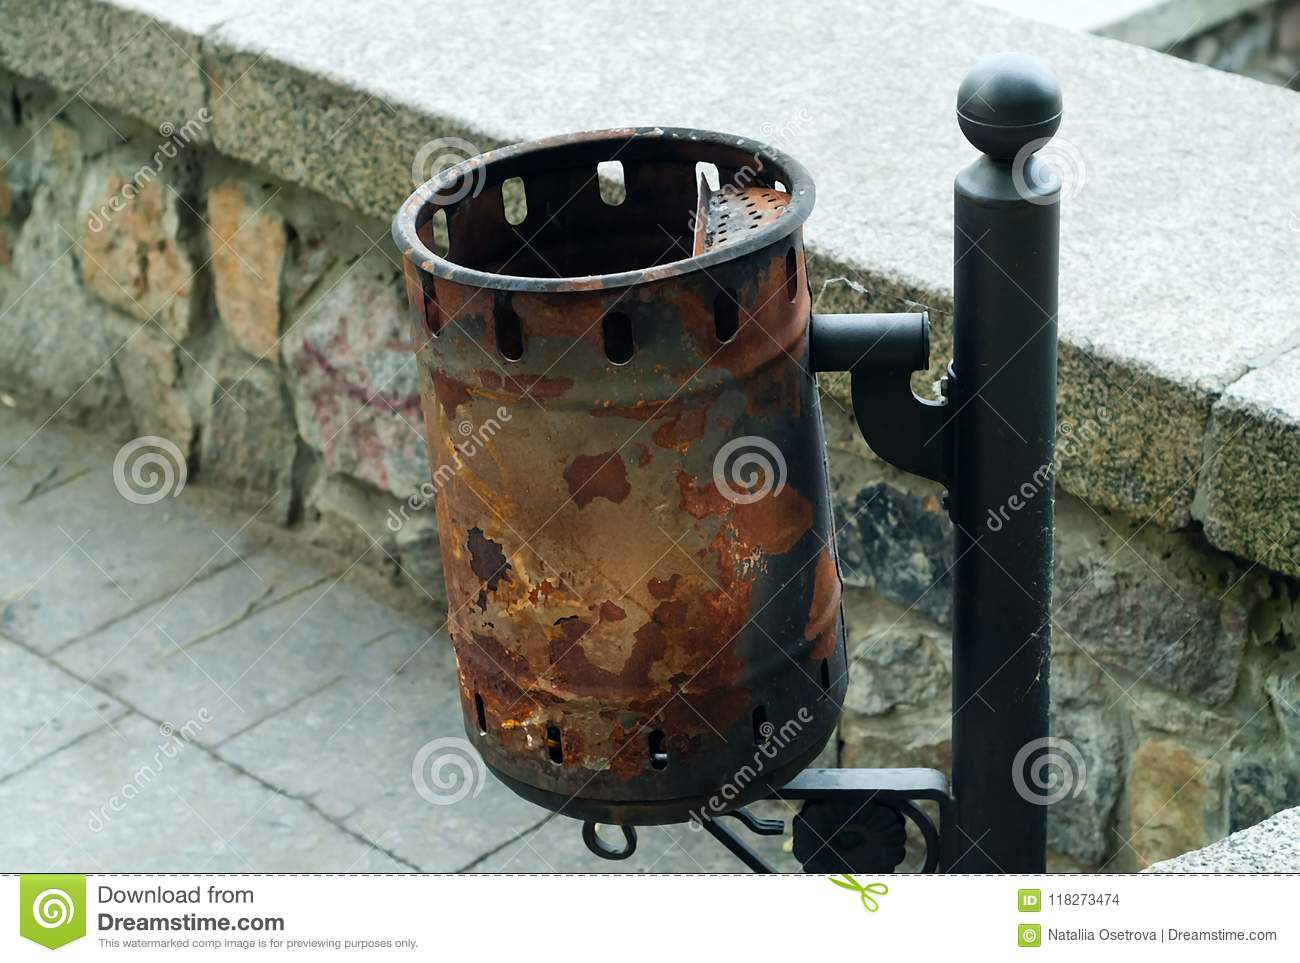 Vintage iron trash can, concept of authentic objects